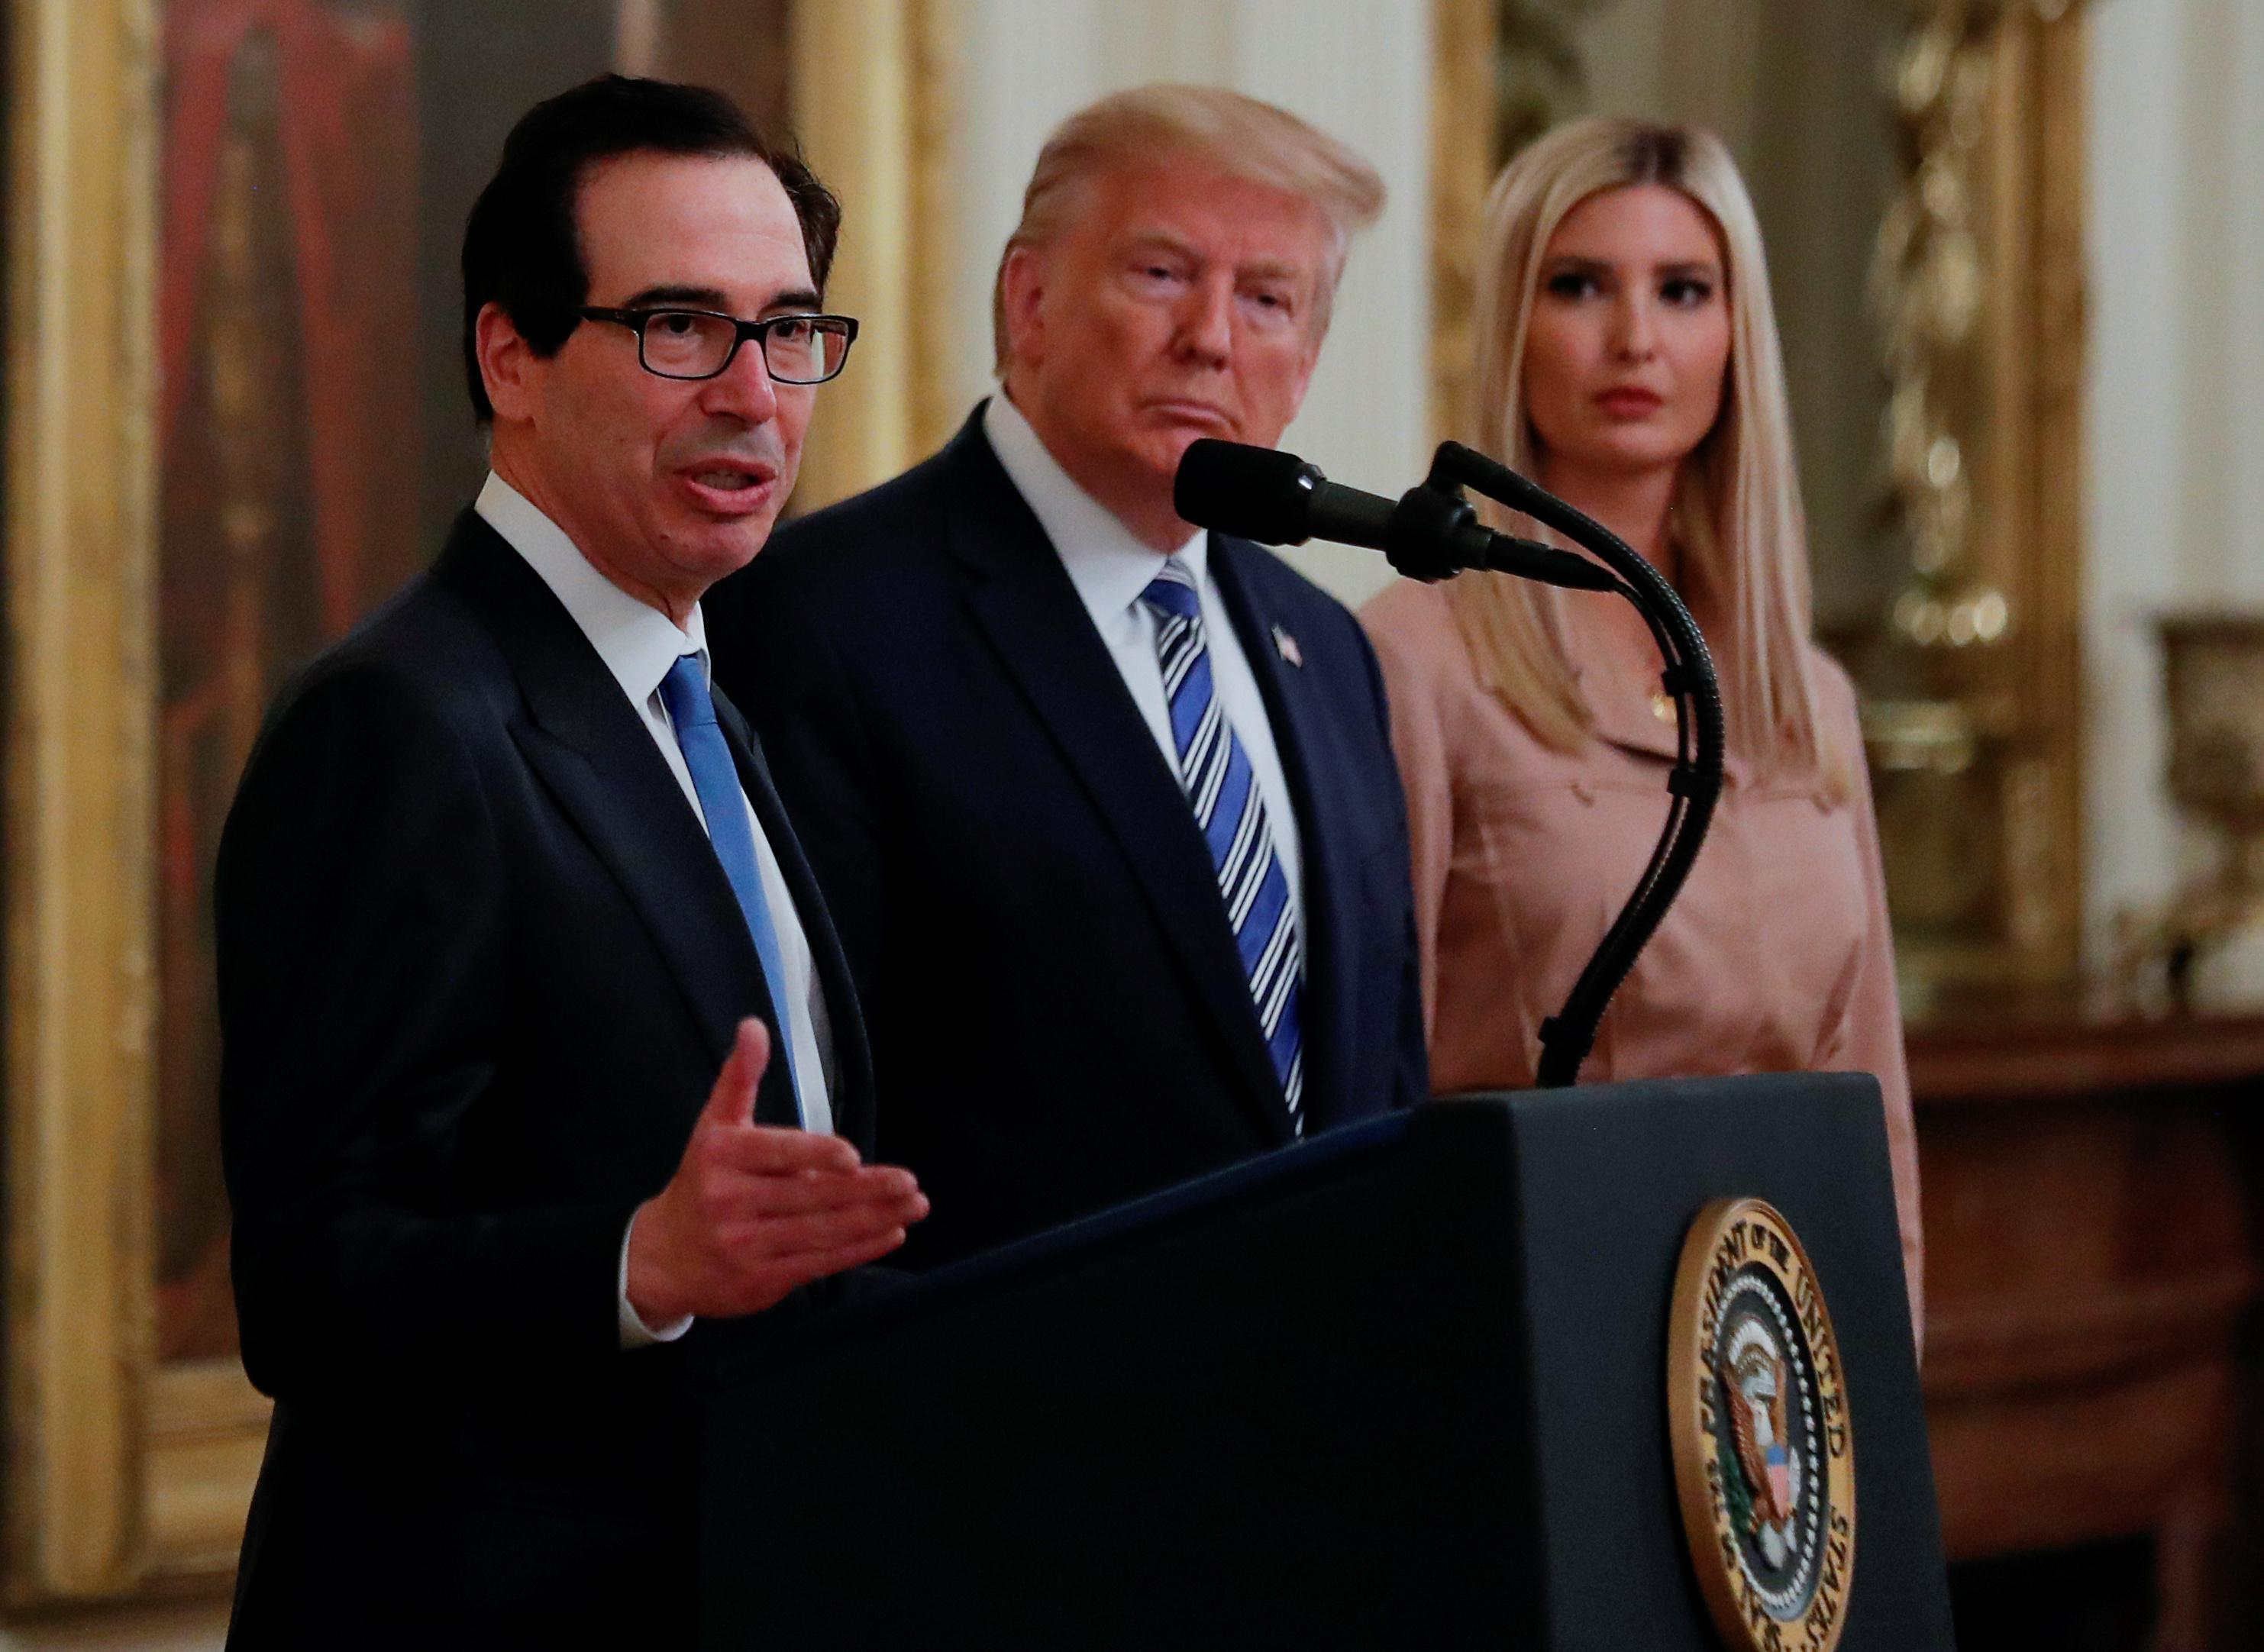 Treasury Secretary Steven Mnuchin speaks as U.S. President Donald Trump and White House senior adviser Ivanka Trump listen during an East Room event highlighting Paycheck Protection Program (PPP) loans for small businesses adversely affected by the coronavirus disease (COVID-19) outbreak, at the White House in Washington, U.S., April 28, 2020. Carlos Barria